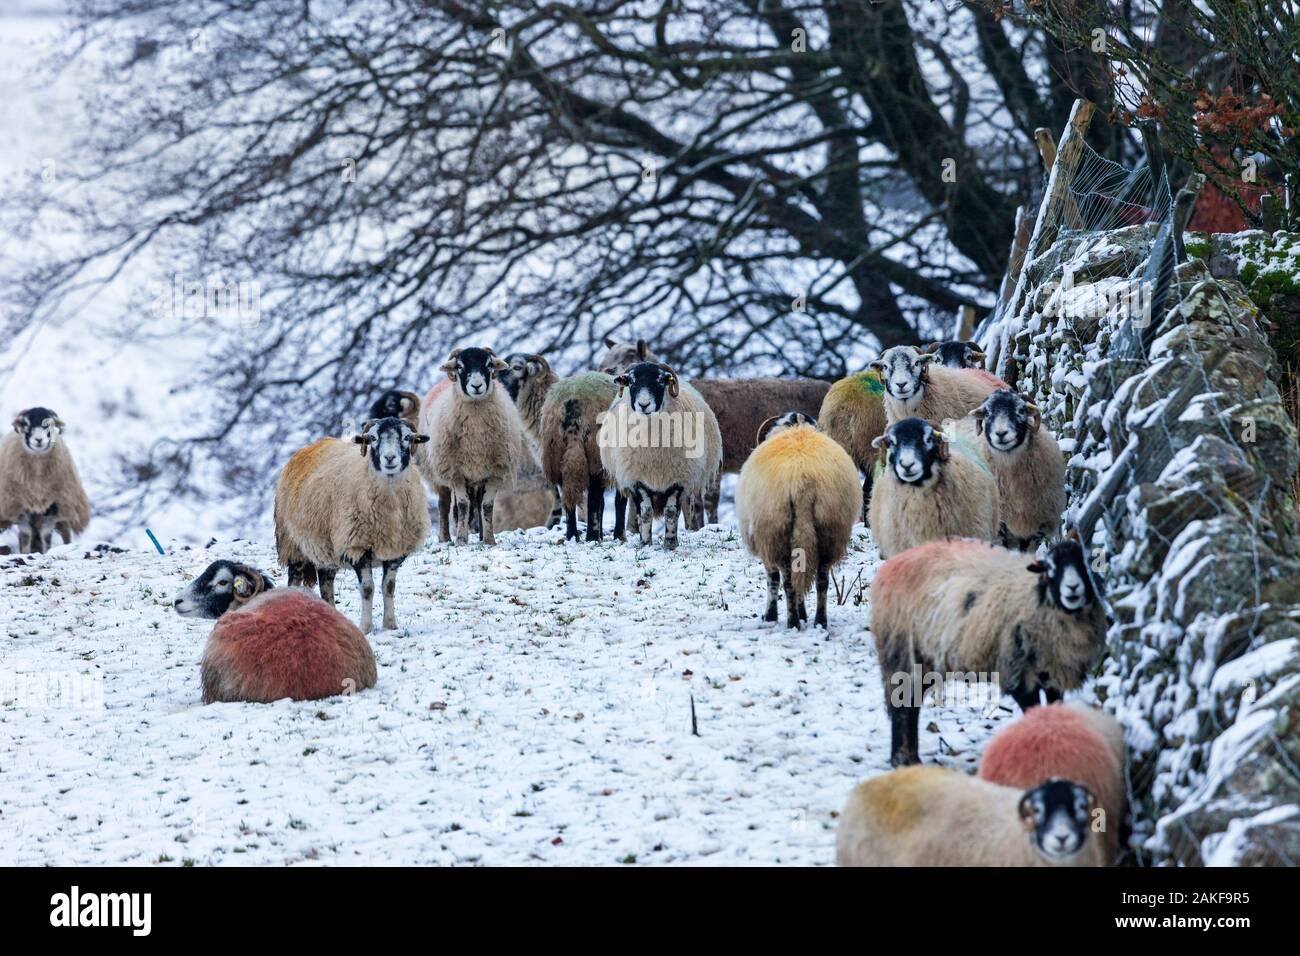 Teesdale, County Durham, UK.  9th January 2020. UK Weather.  Sheep take shelter behind a drystone wall as snow hits upland areas in Teesdale and elsewhere in the North Pennines. Credit: David Forster/Alamy Live News Stock Photo